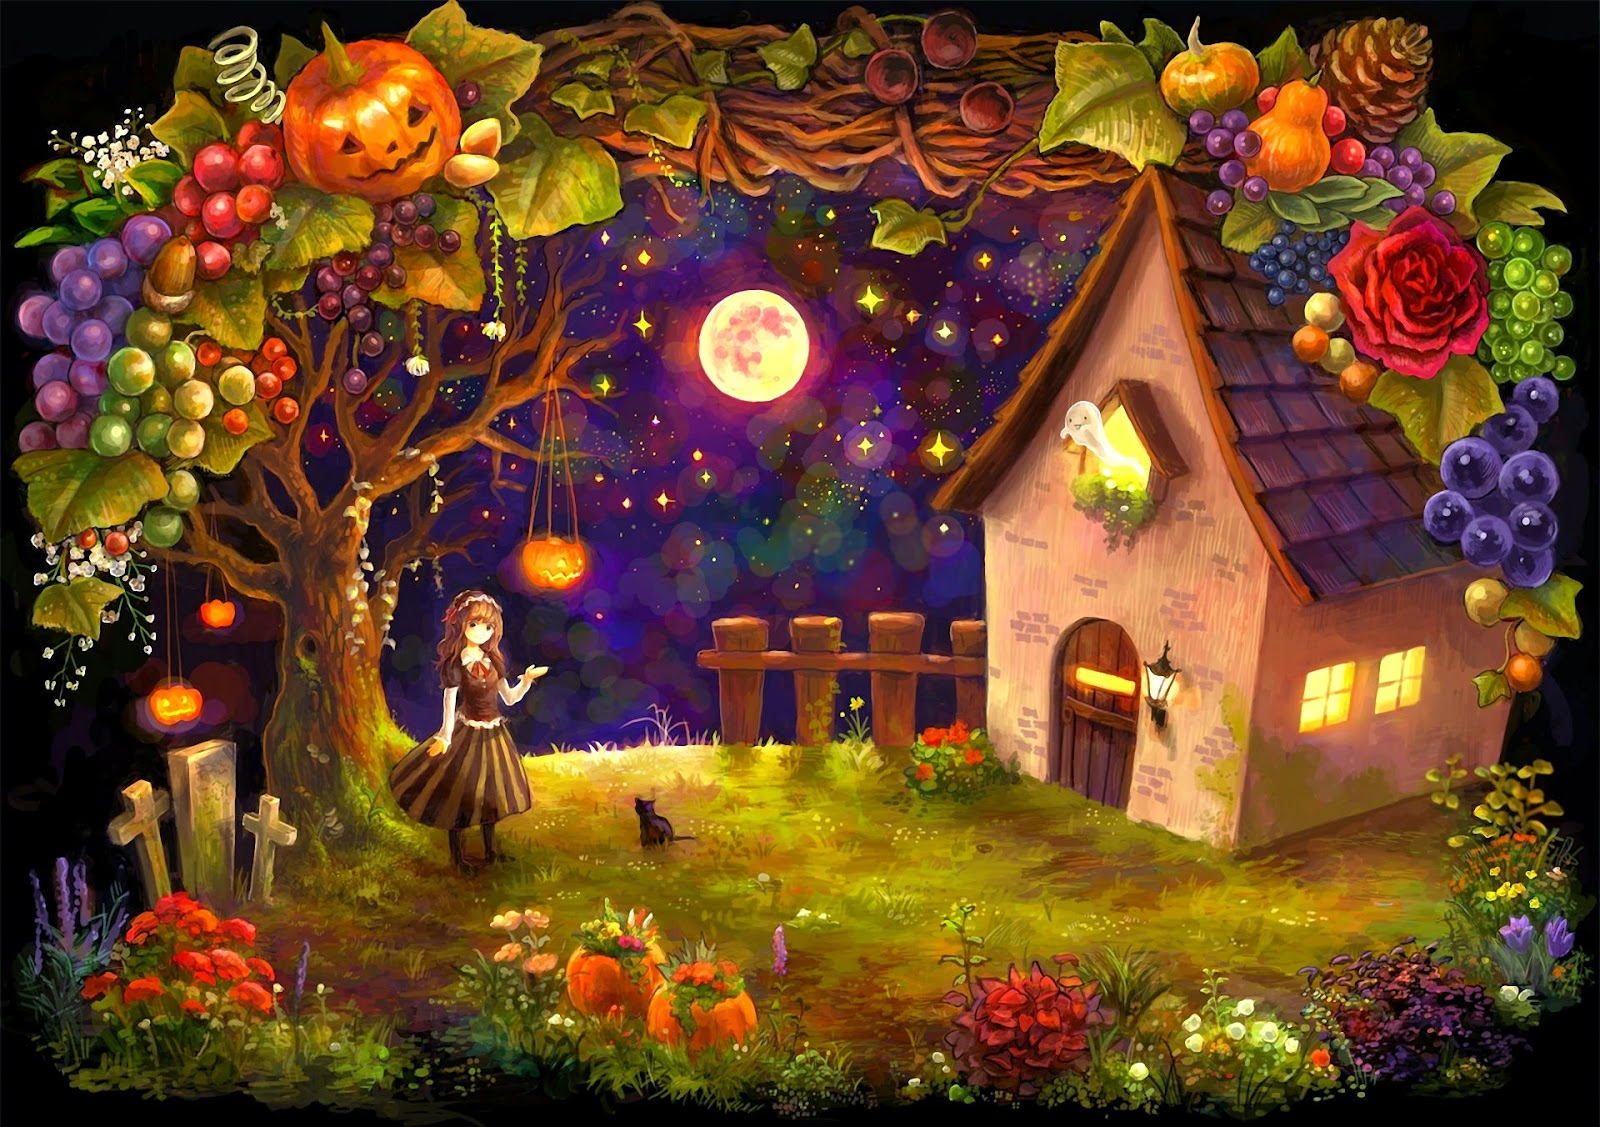 Halloween-nights-decorated-house-image-for-kids-children.jpg